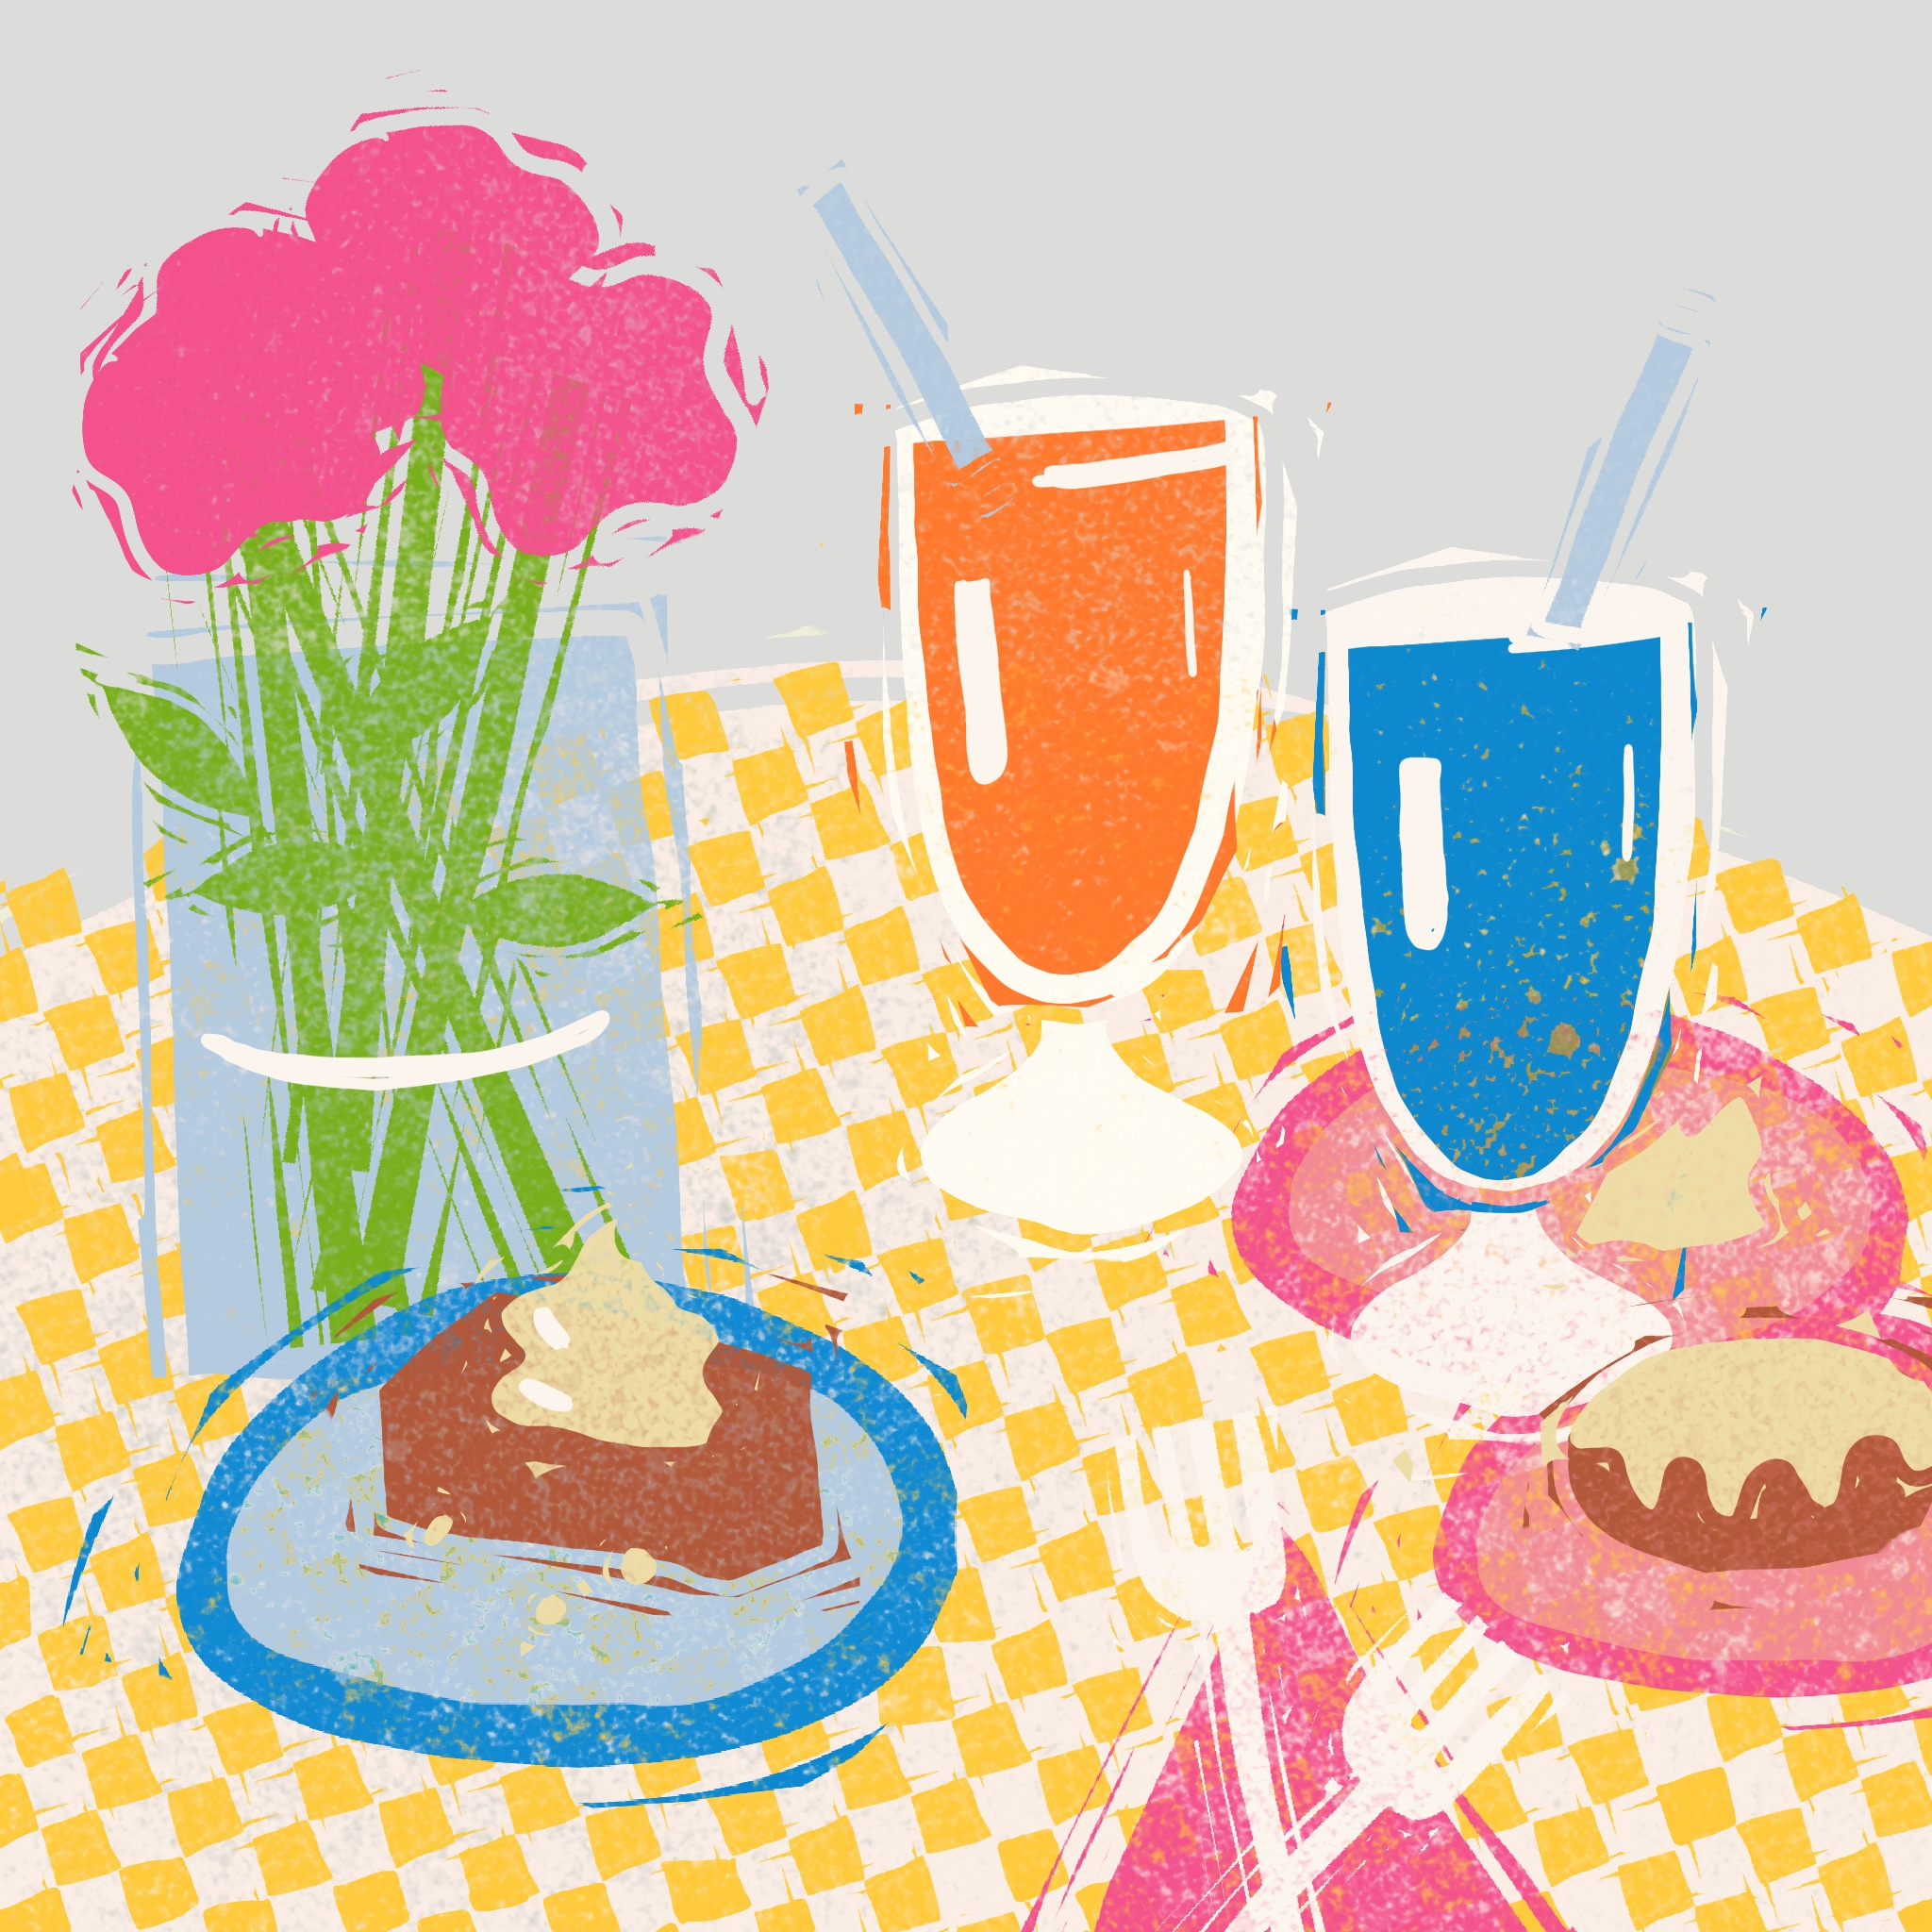 Screen print style illustration of a still life: milkshakes, pastries, and a vase of flower on a yellow checkered tablecloths